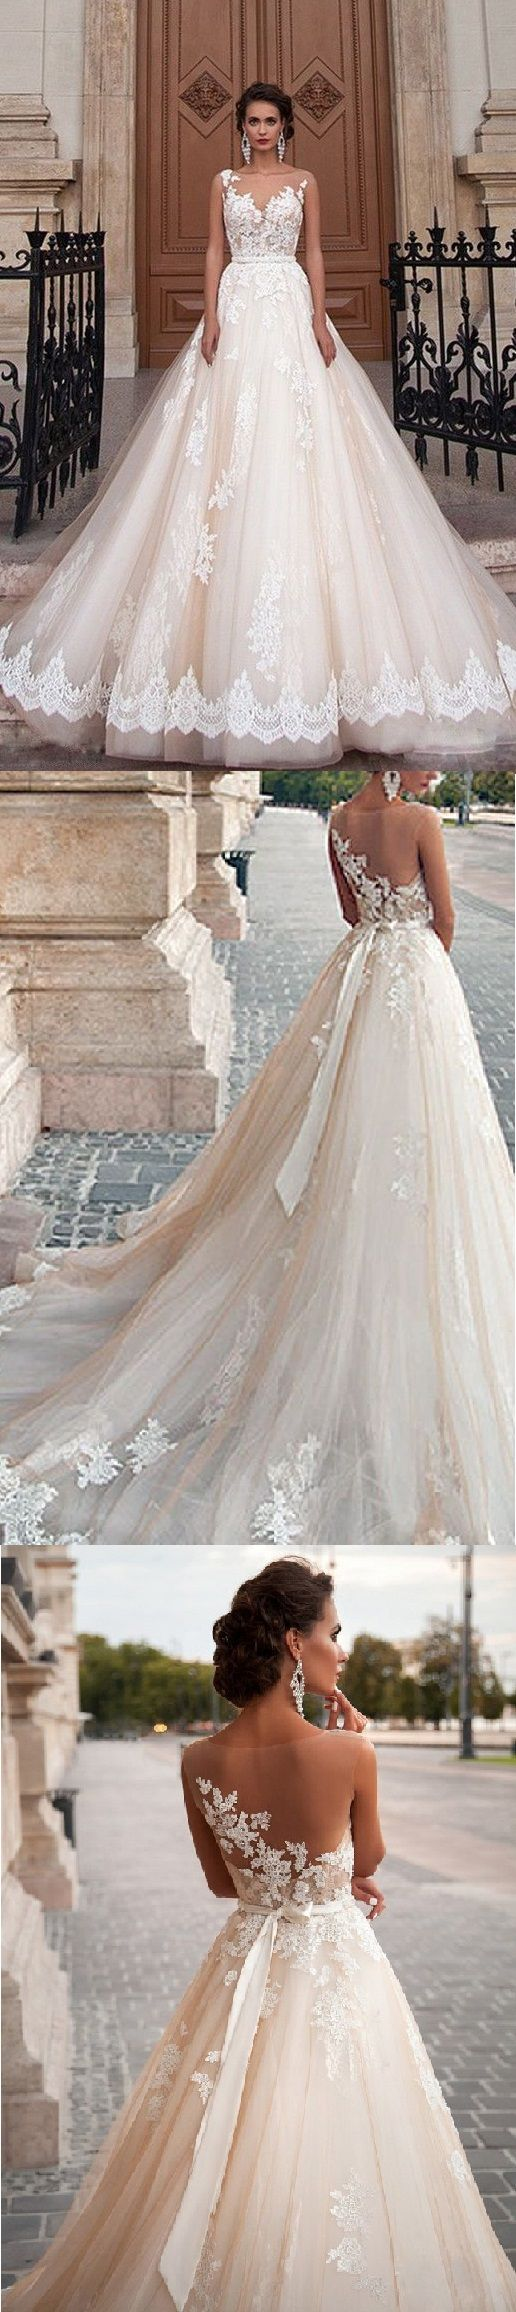 vintage illusion neckline long a-line/princess lace overlay tulle wedding dress with sash